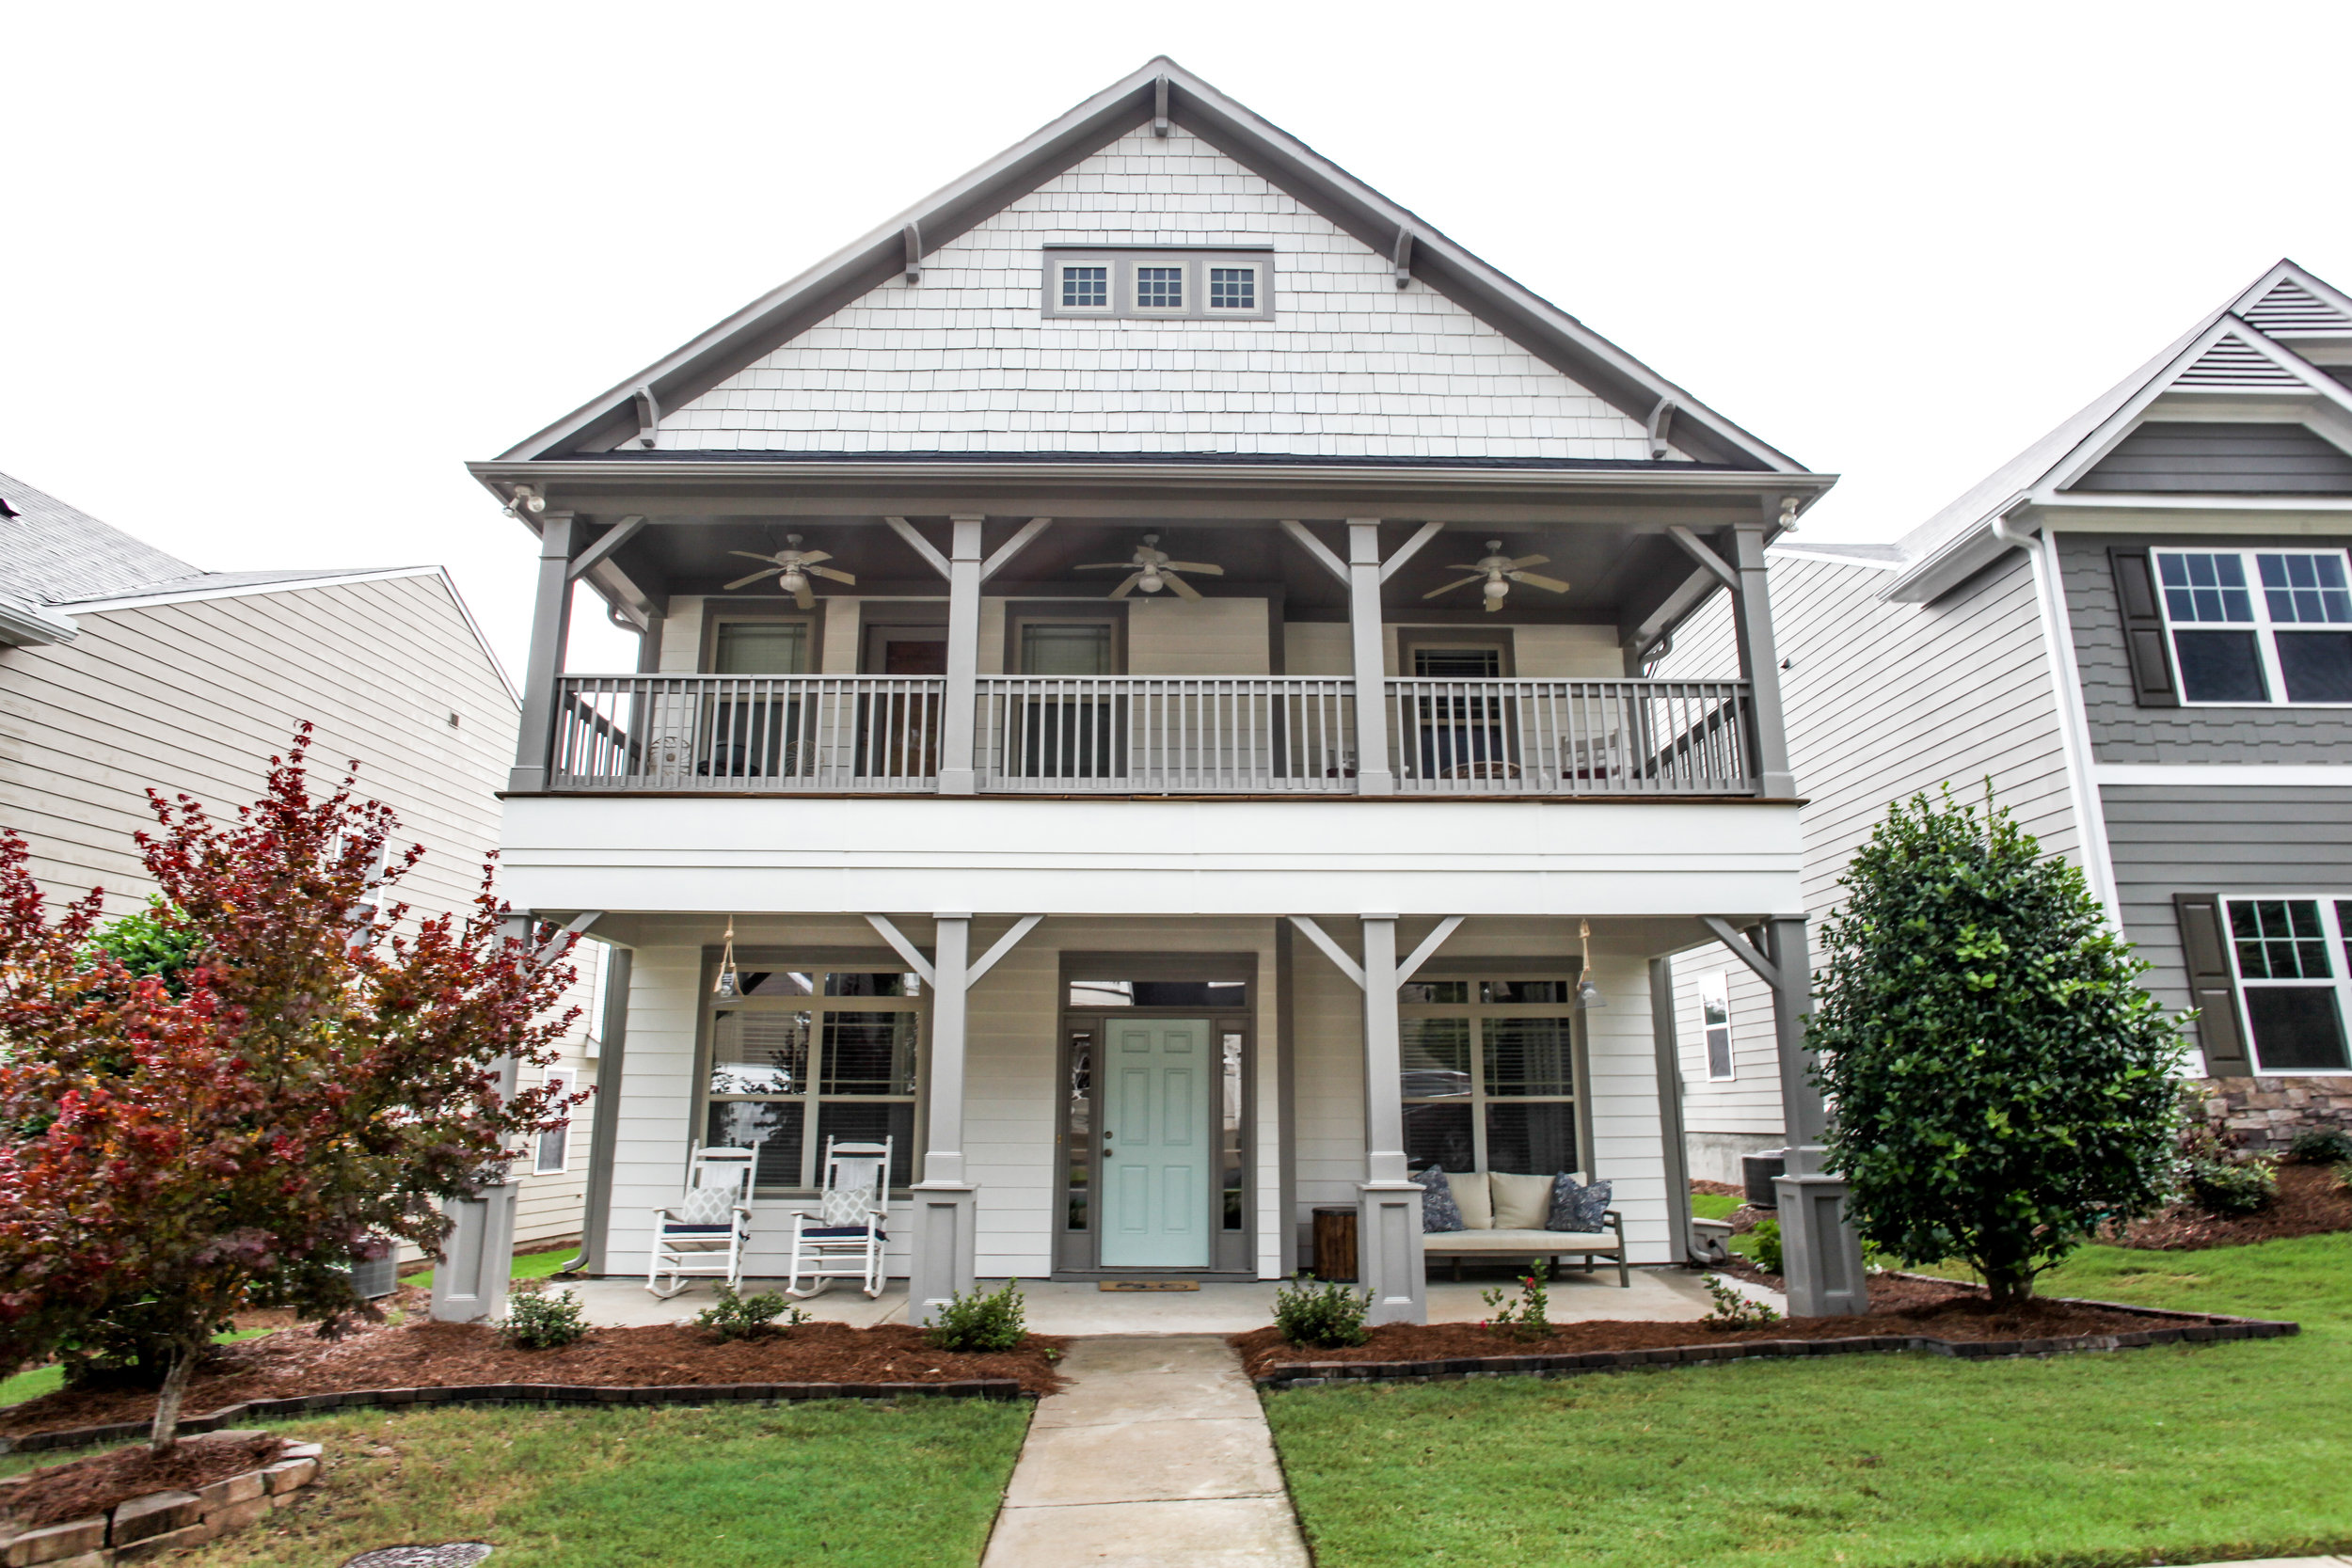 SOLD - under contract IN less than 2 weeks!